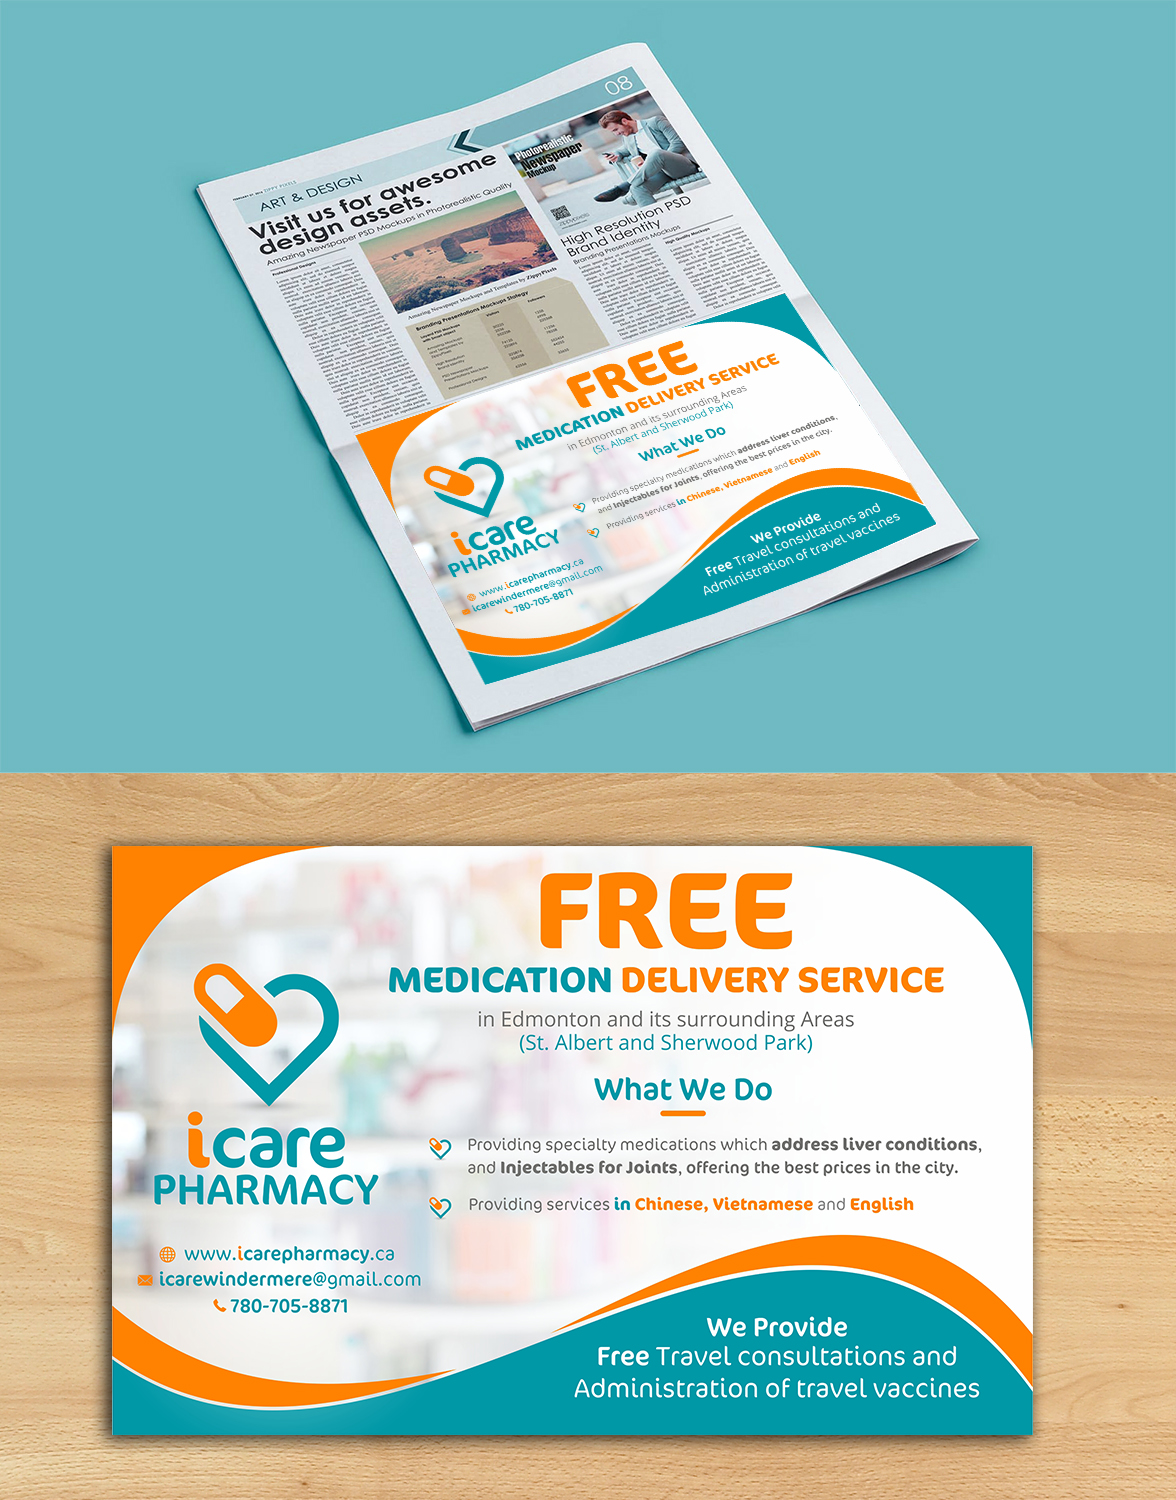 Elegant, Playful, Pharmacy Newspaper Ad Design for a Company